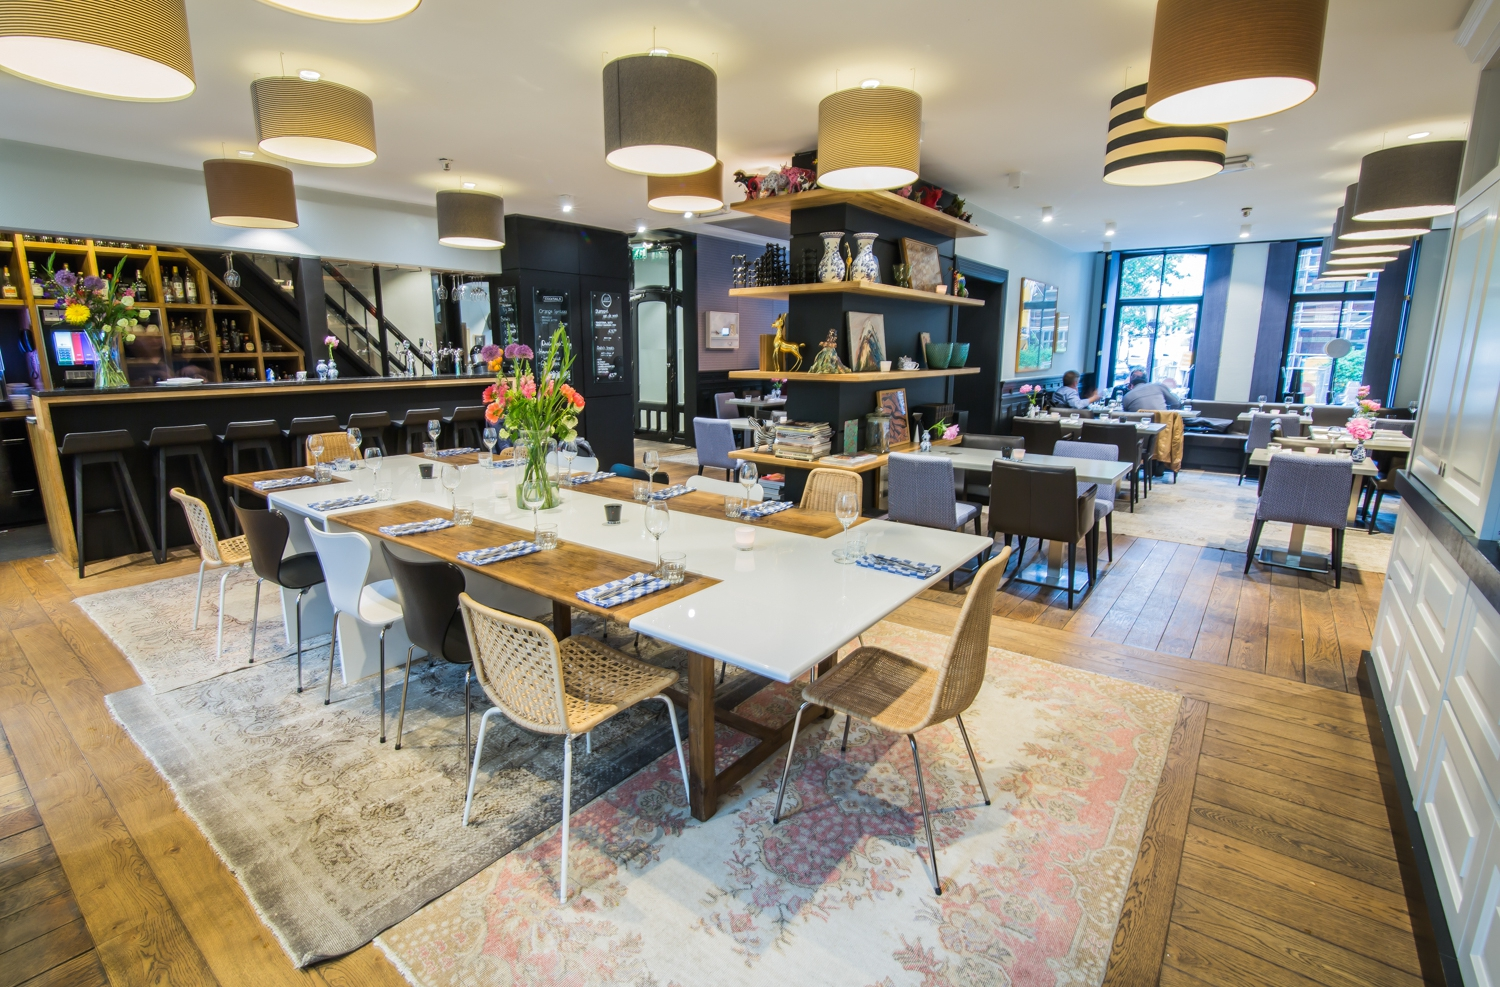 Restaurant Joost Hotel Tips by locals Vondel Blog Vondel Hotels